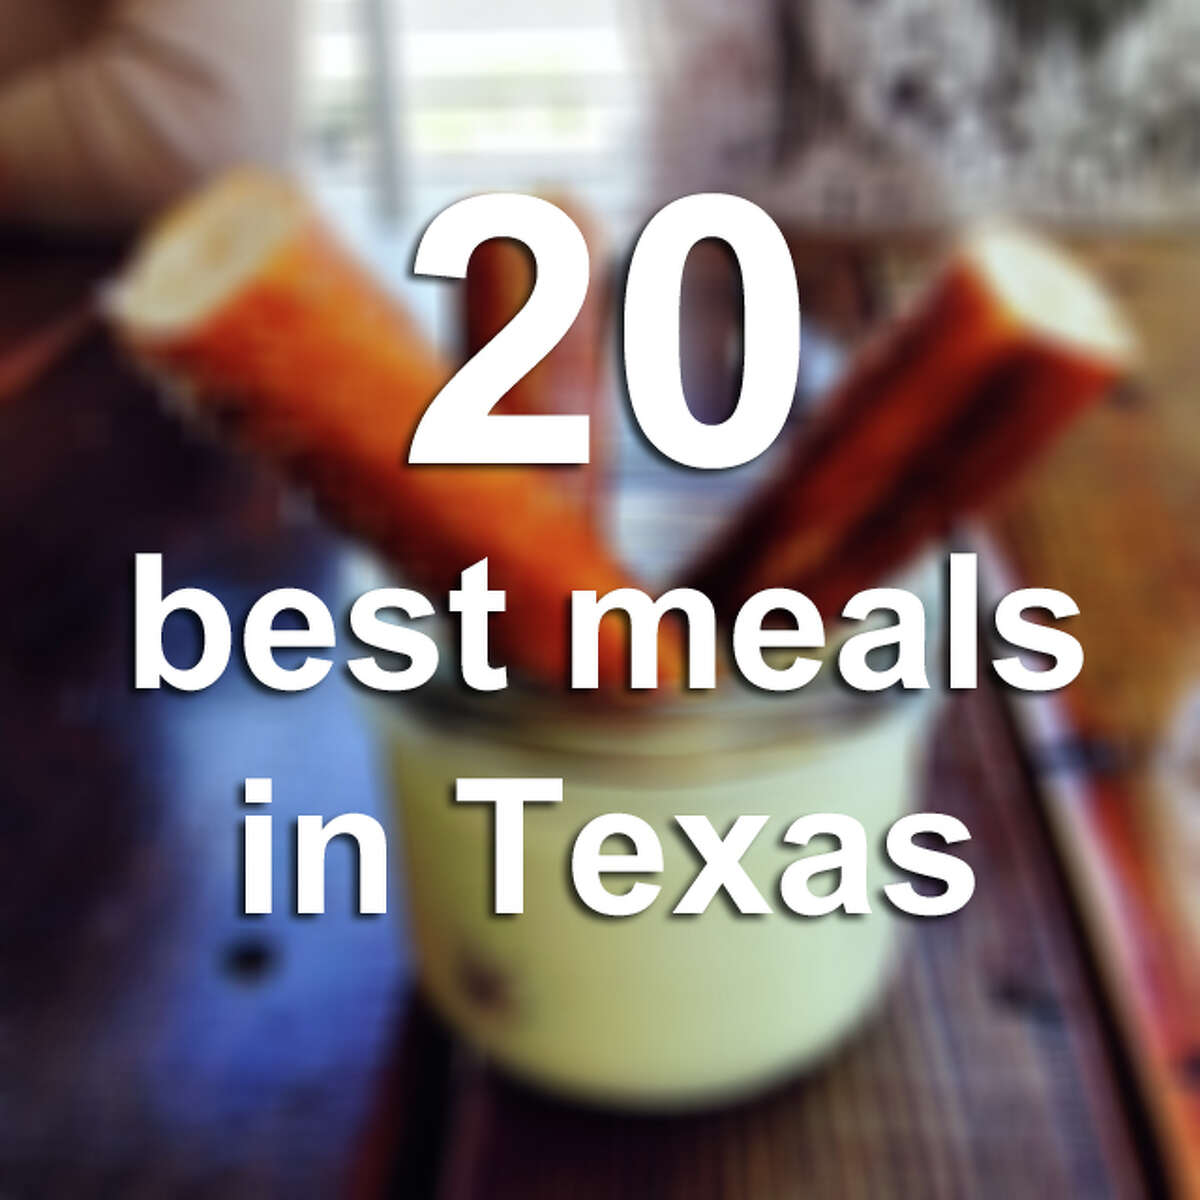 Three regional food experts give their takes on the 20 best meals in Texas.